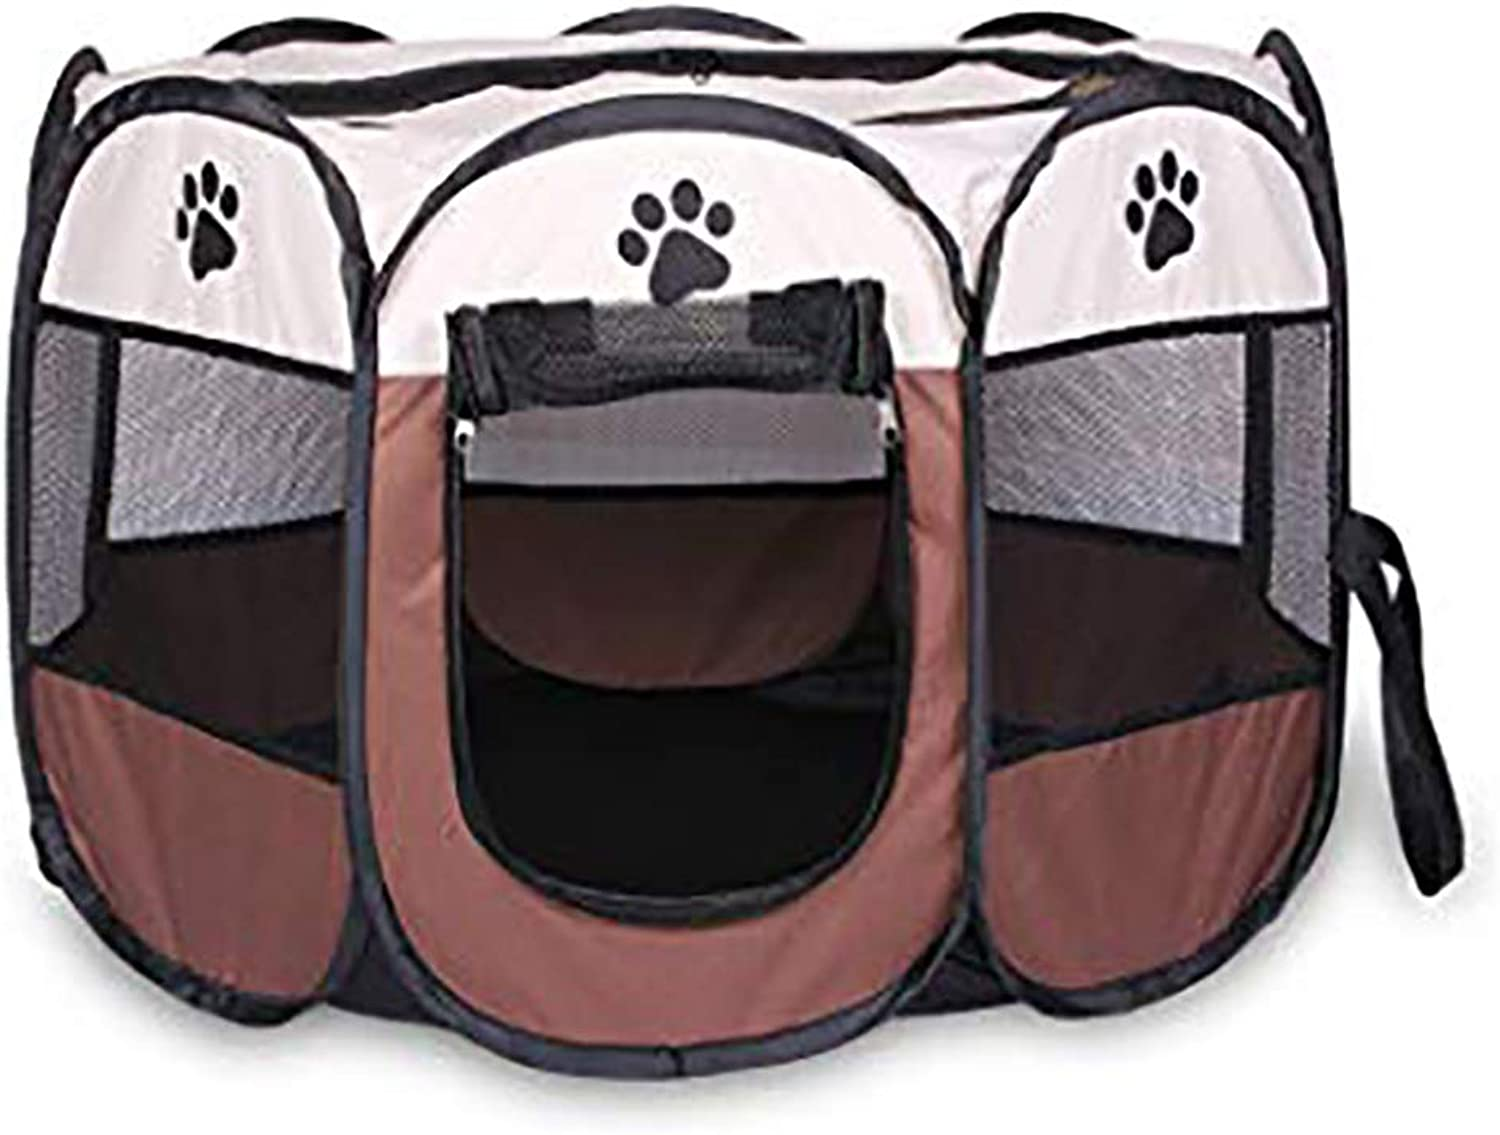 Pet tent cat delivery room folding cat nest cat delivery box closed outdoor dog kennel pet dog production supplies easy to operate octagonal fence provides romantic fun portable folding pet tent( beige white),S